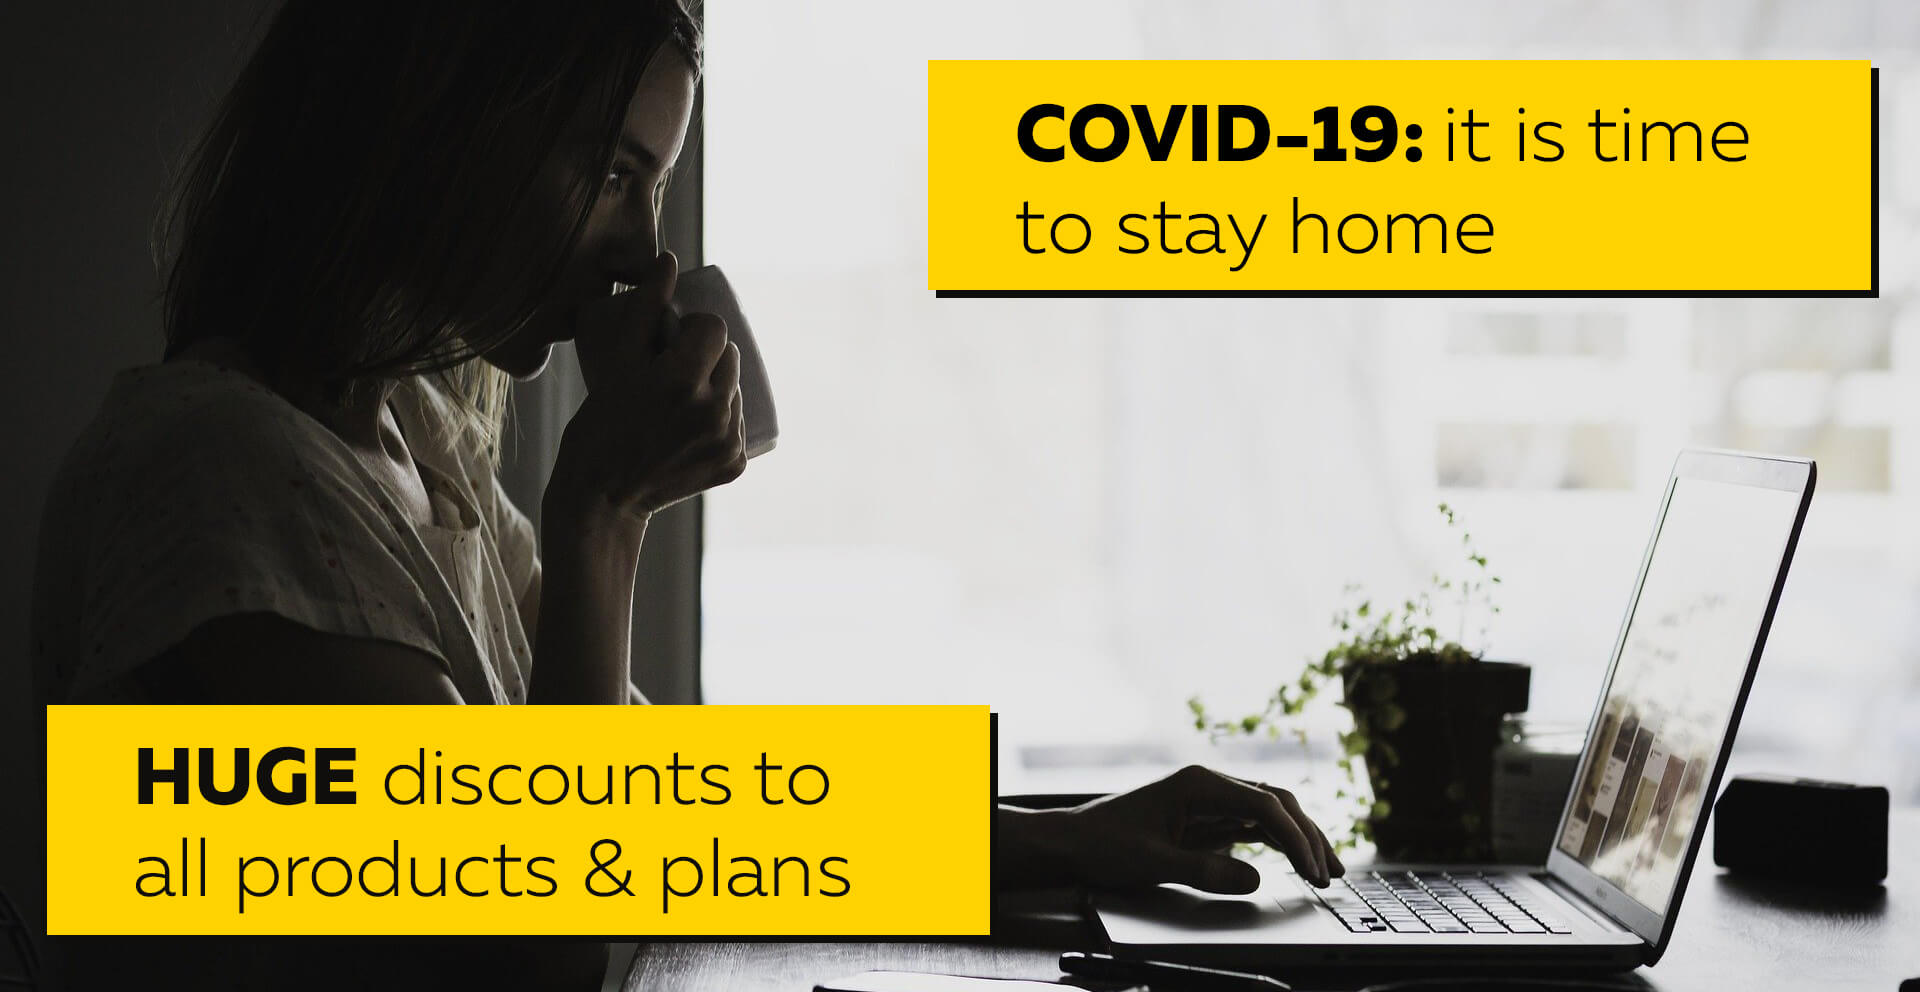 COVID-19: It is Time to Stay Home. Discount to All Products